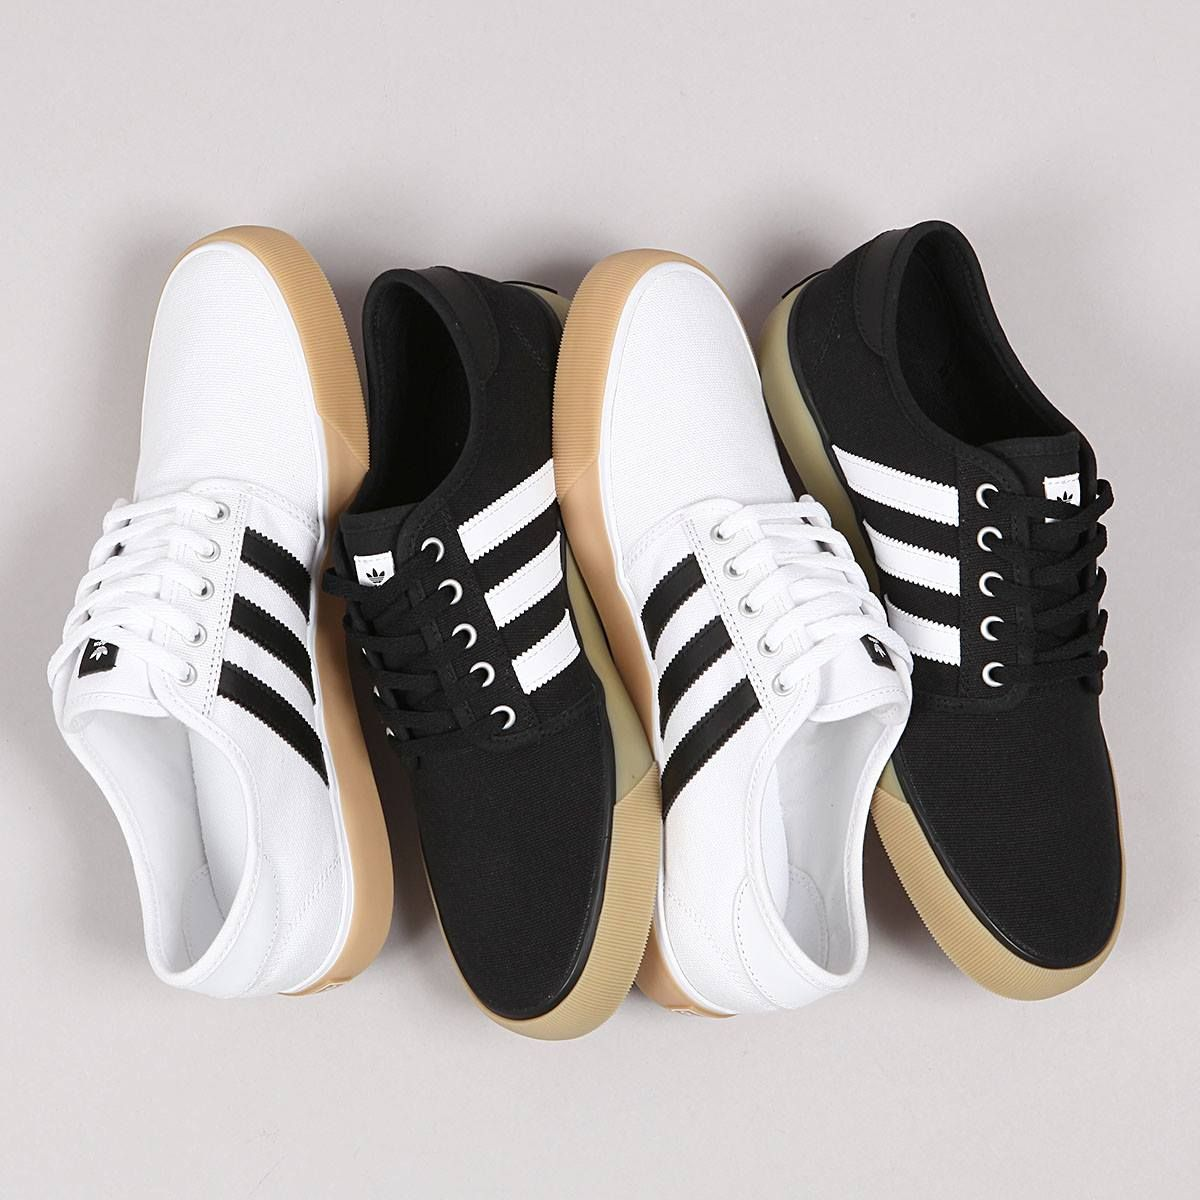 Adidas Seeley Decon White & Core Black Gum https://www.popname.